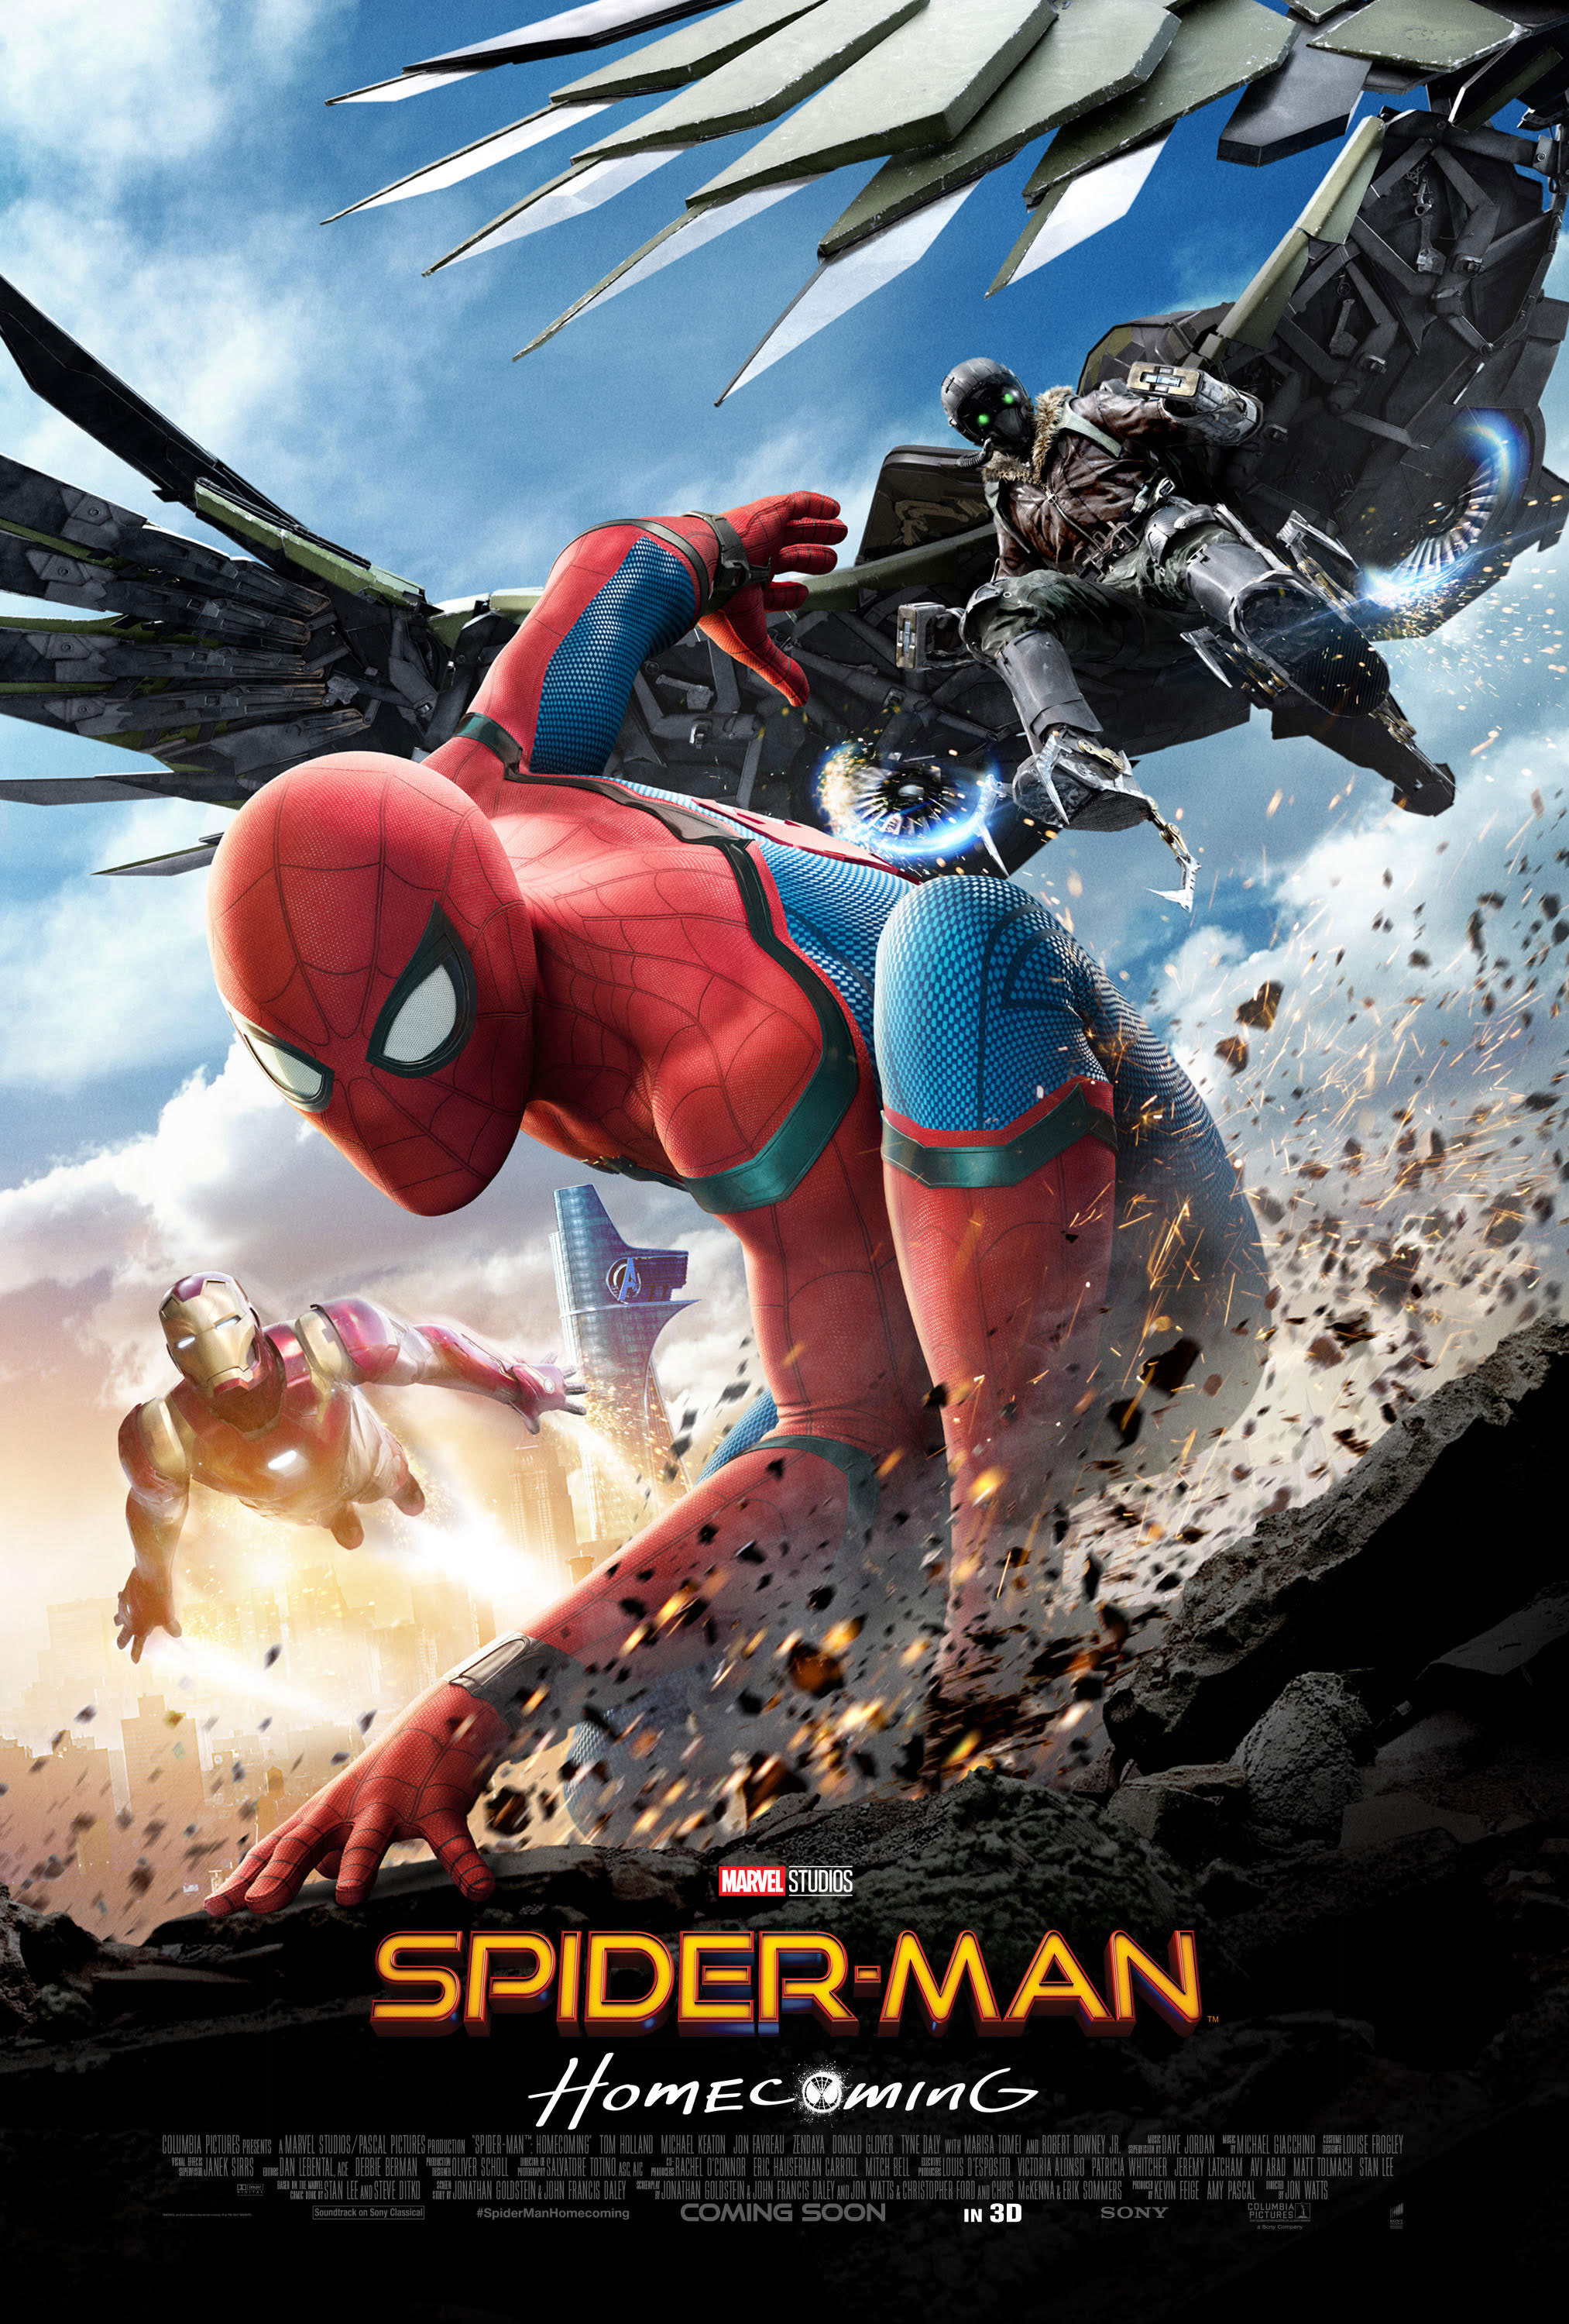 Spiderman Homecoming [2017 USA Movie] Action, Adventure, Sci Fi